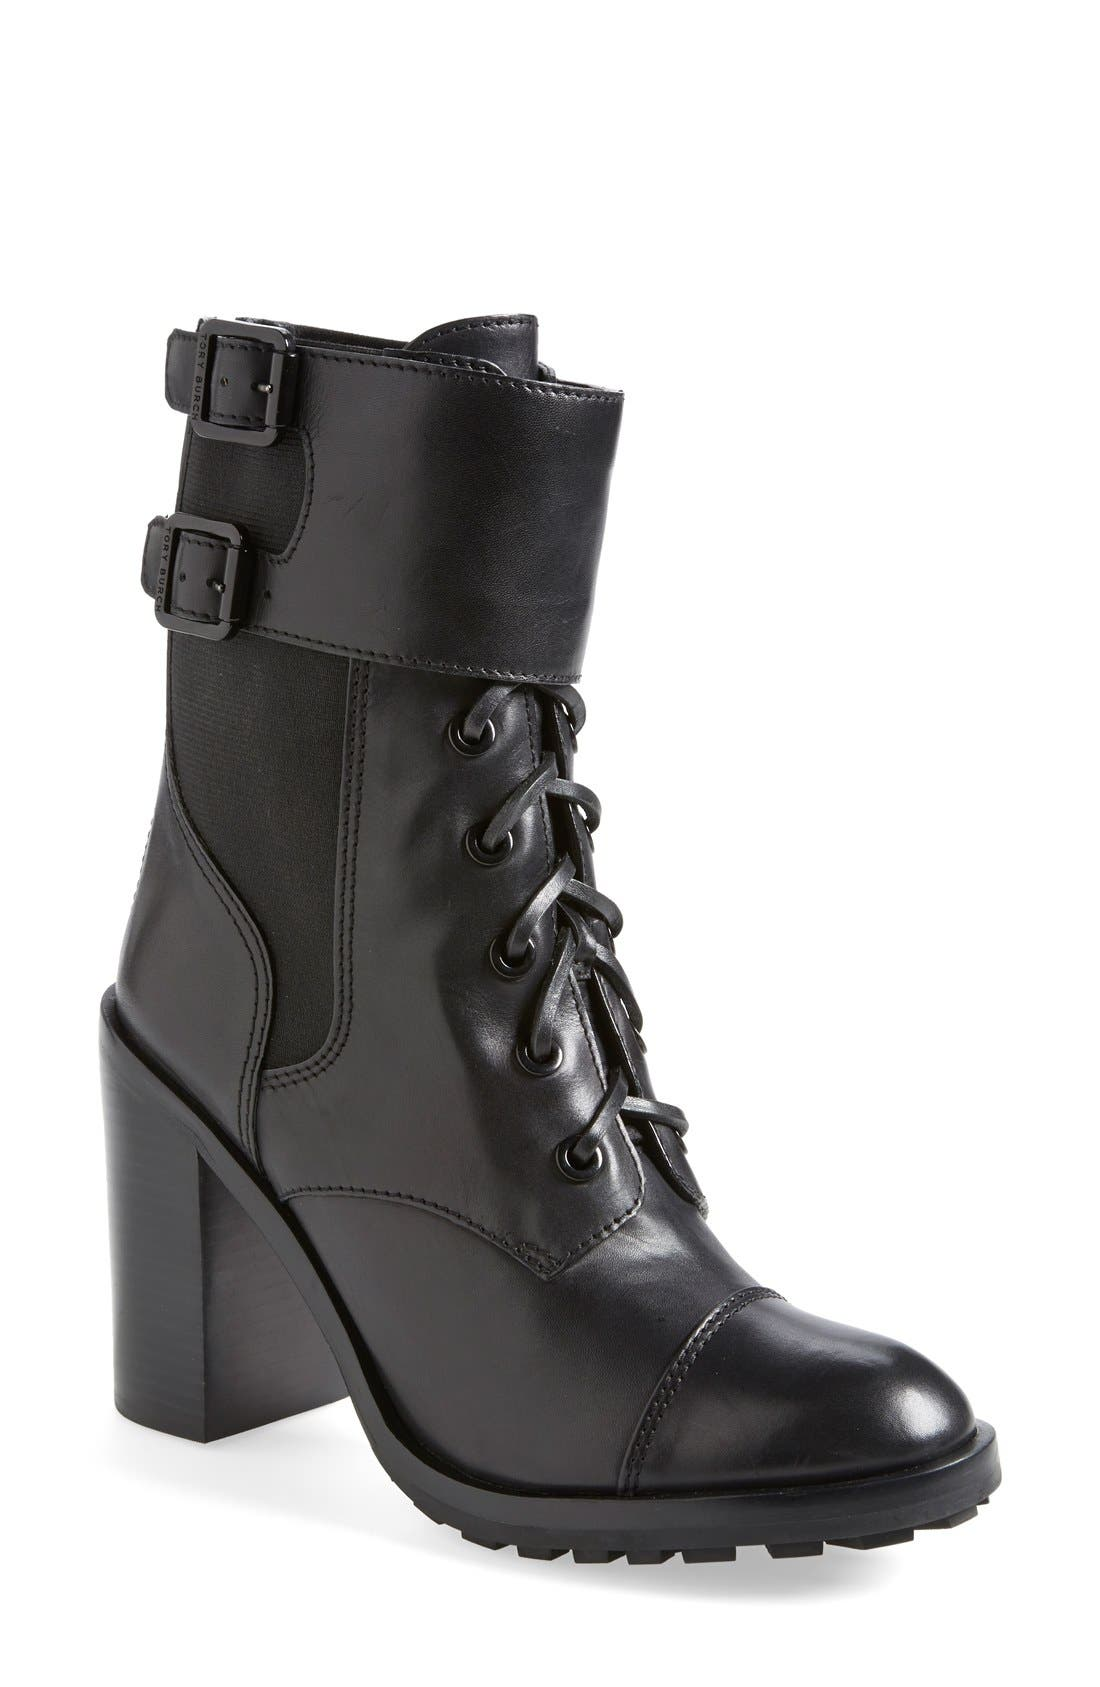 Alternate Image 1 Selected - Tory Burch 'Broome' Bootie (Women)